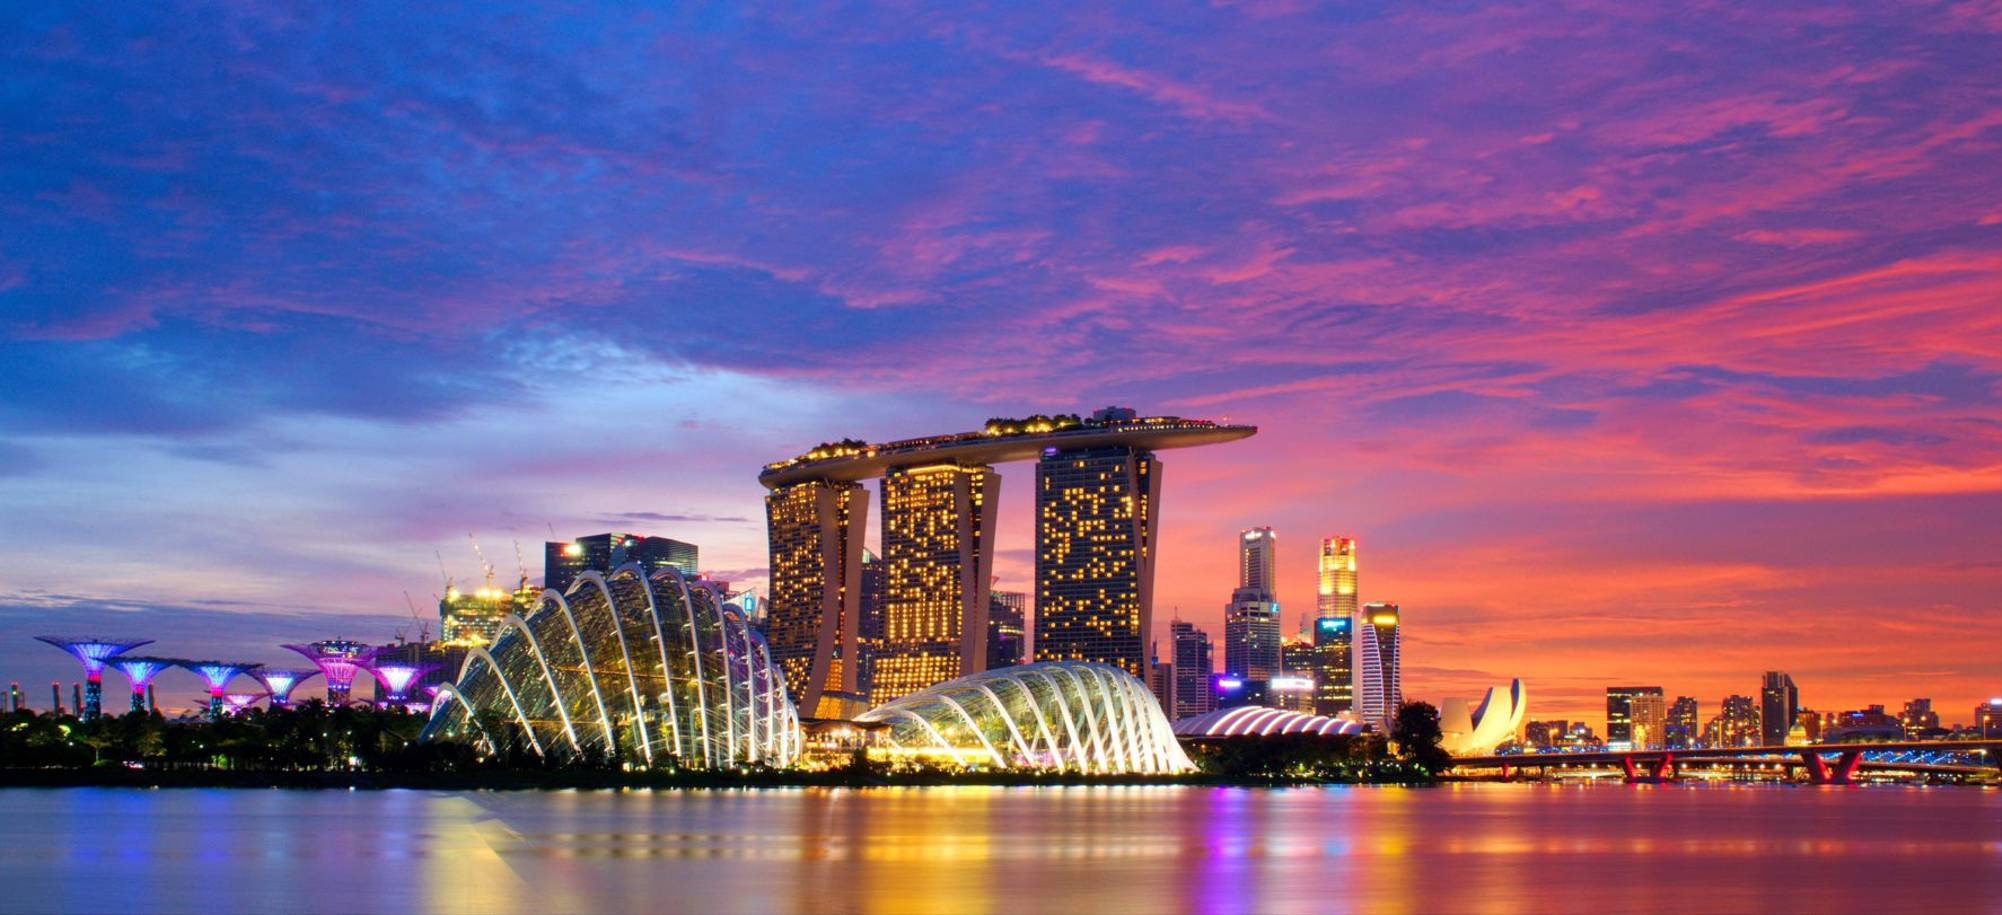 1 Day   Singapore, Hotel Stay   Itinerary Desktop